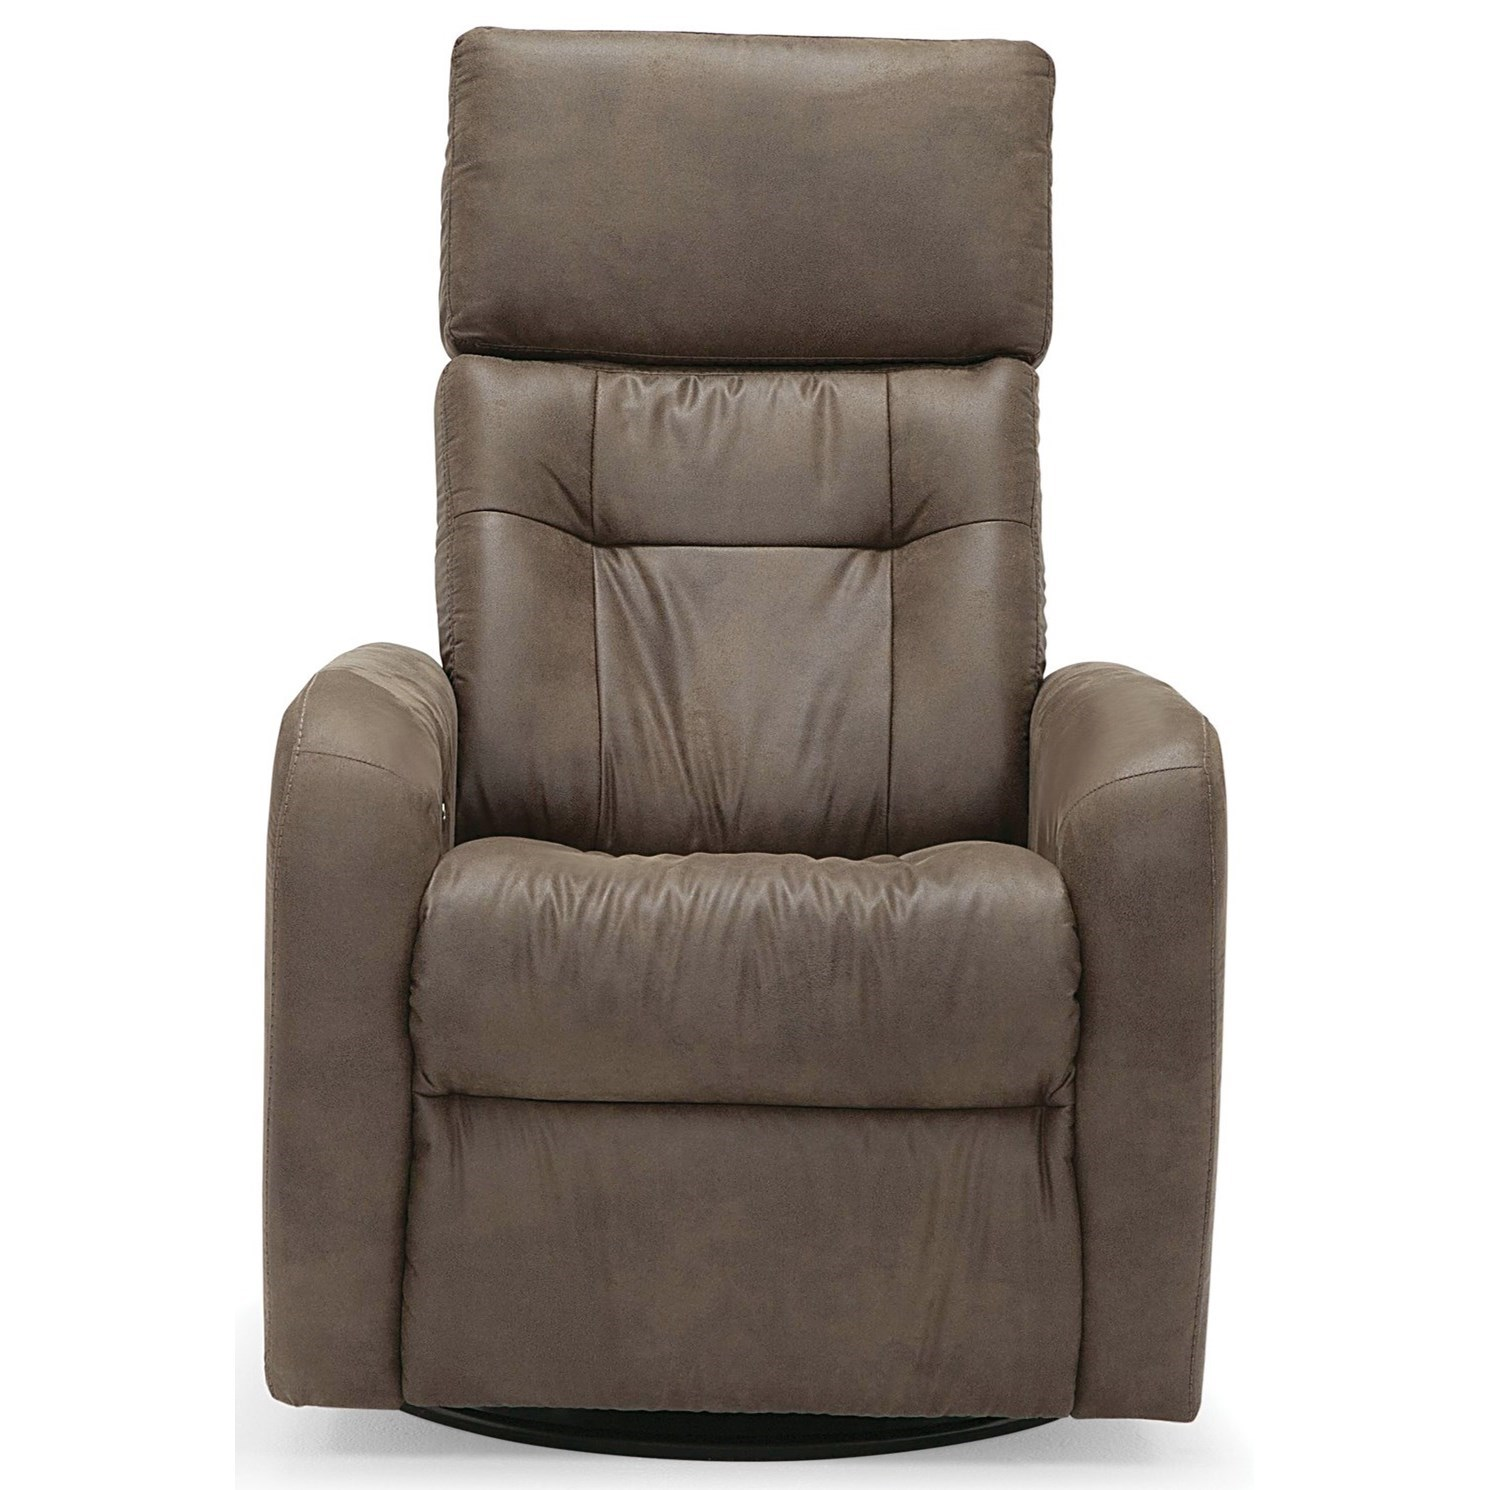 Sorrento Swivel Glider Power Recliner by Palliser at Prime Brothers Furniture